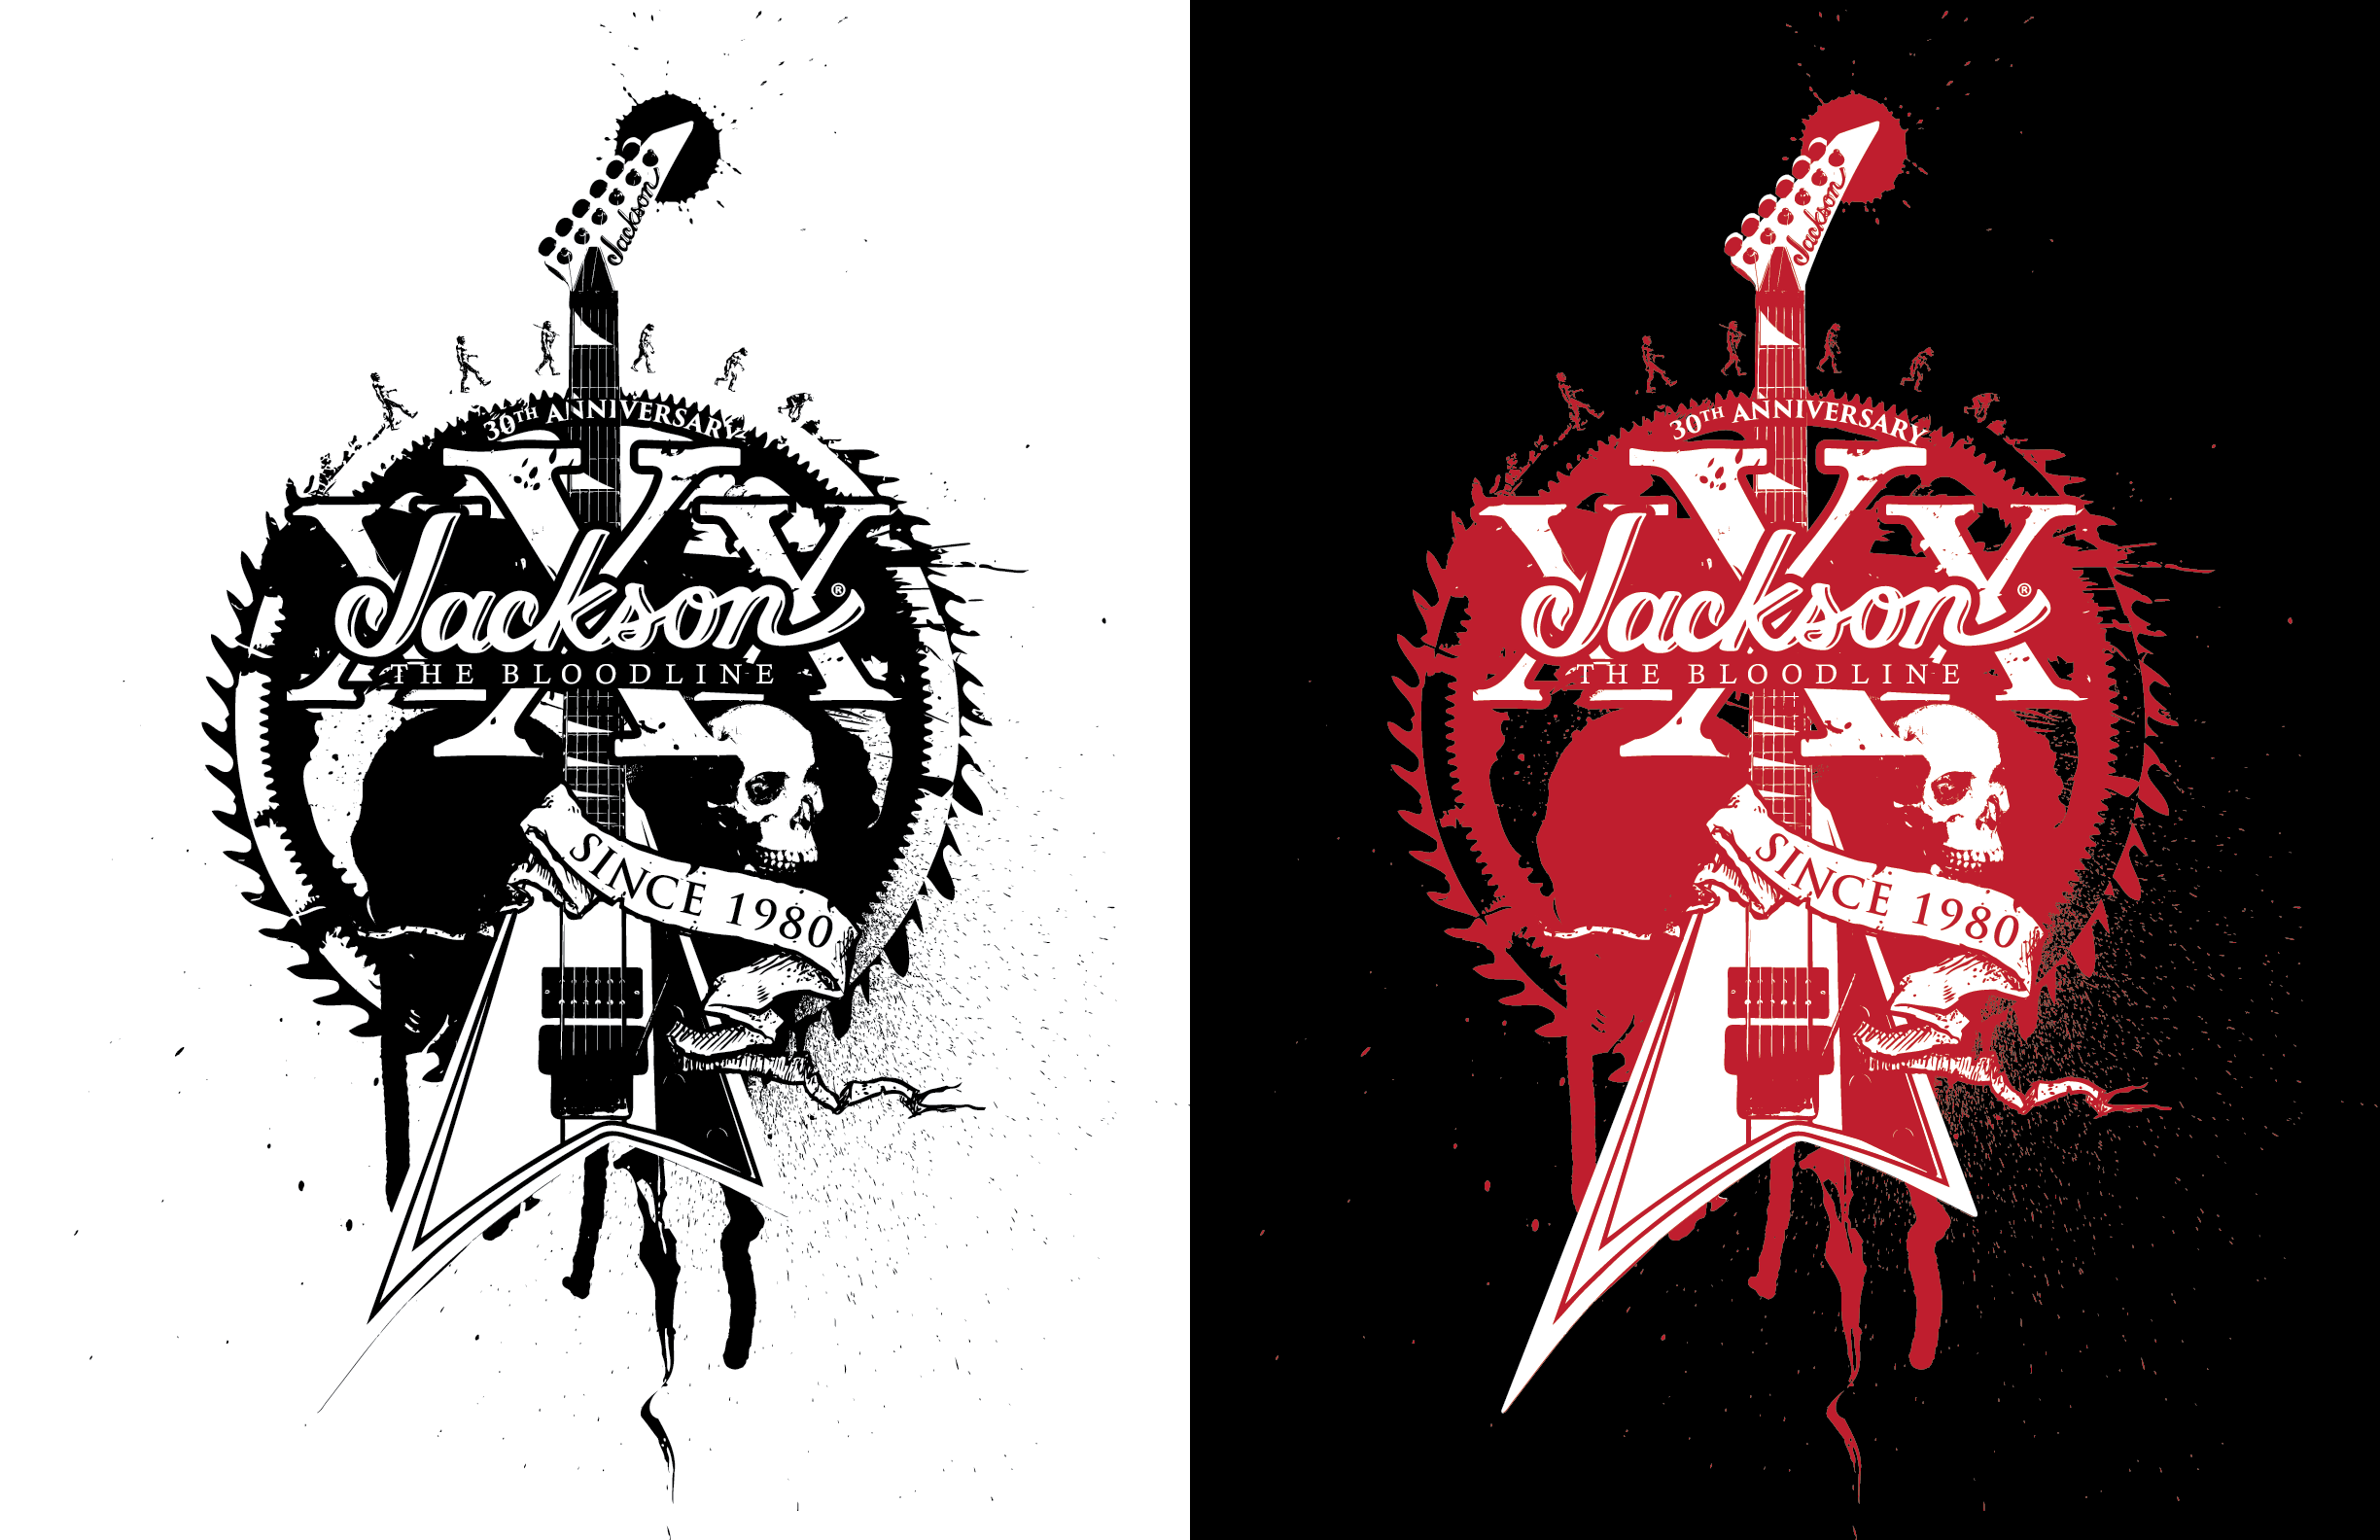 The 30th anniversary logo element was used to create these illustrations.